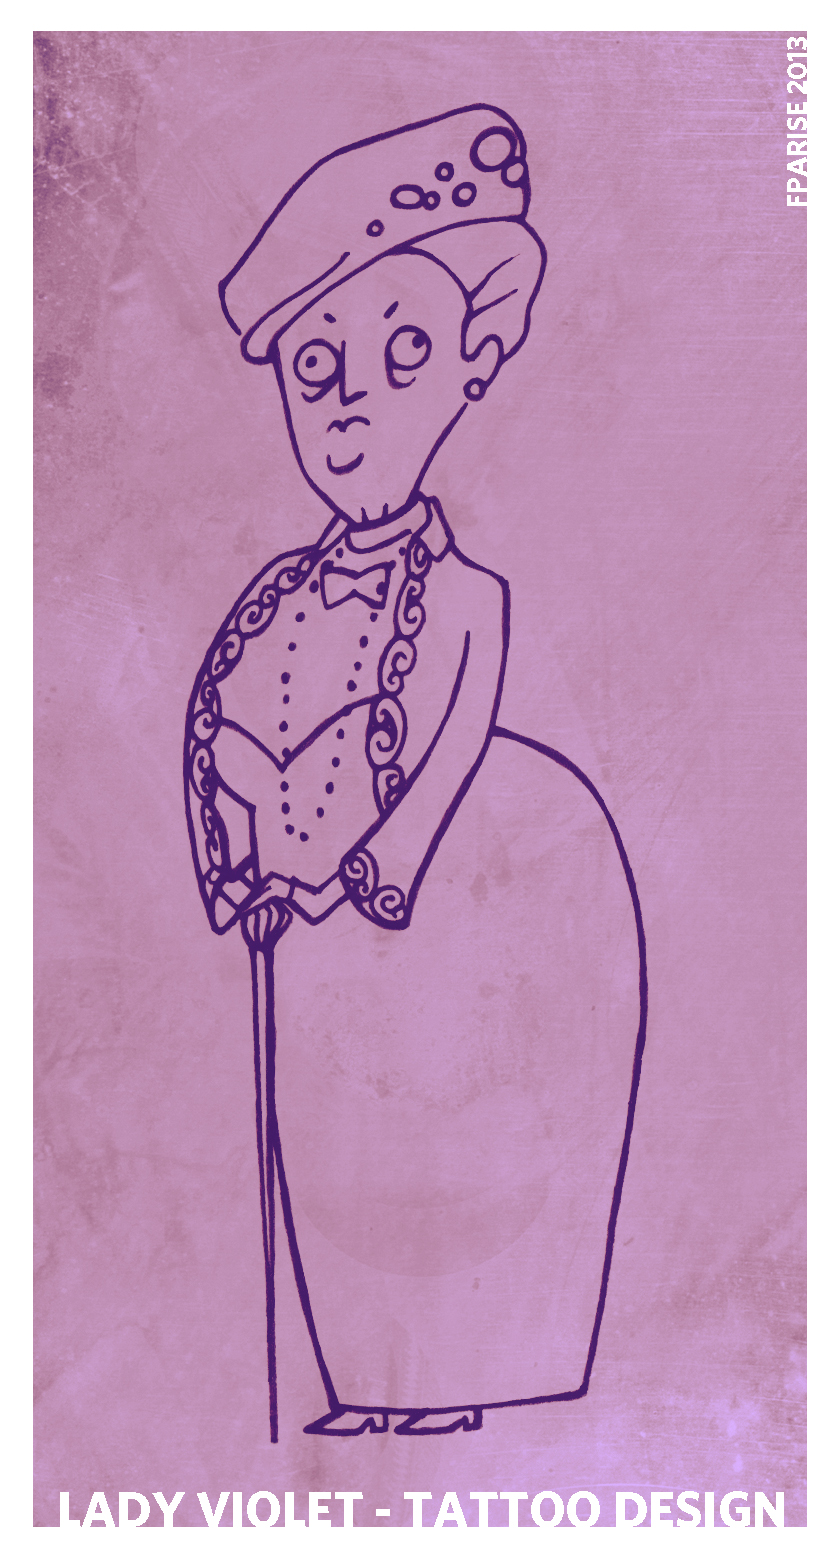 Lady Violet - tattoo design by cesca-specs